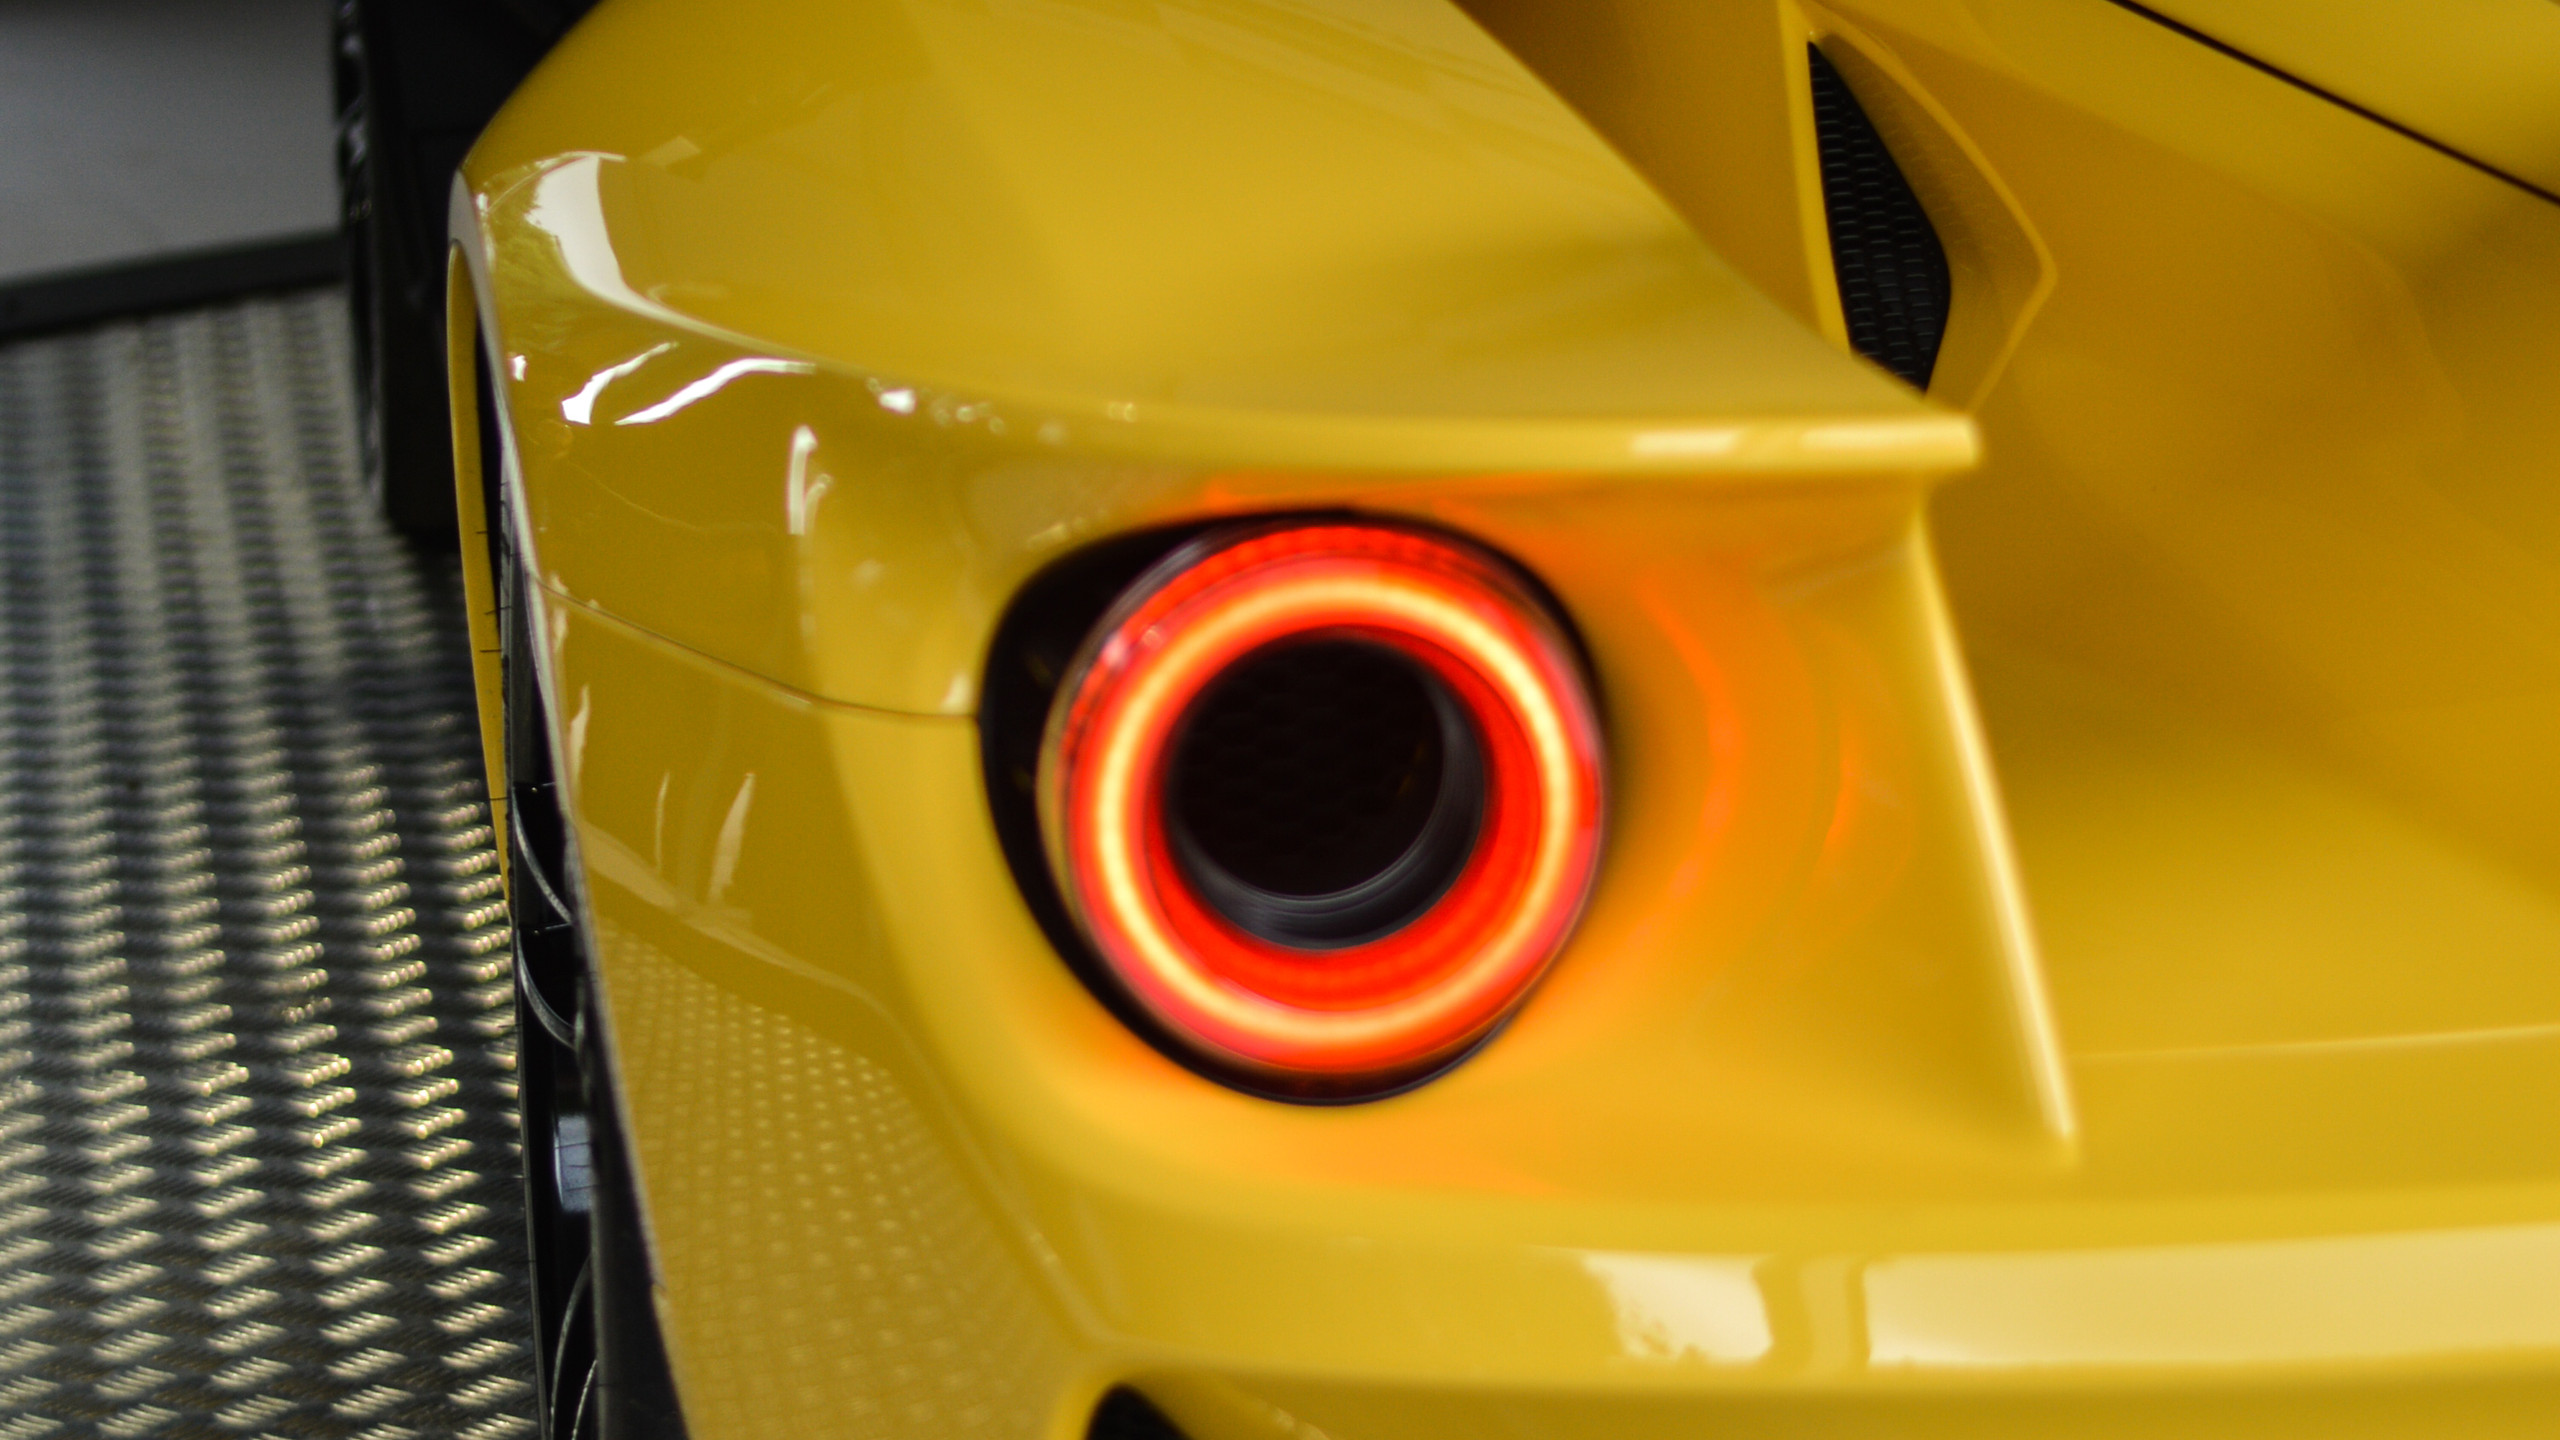 The round rear lights found on all GT generations have been given a modern makover